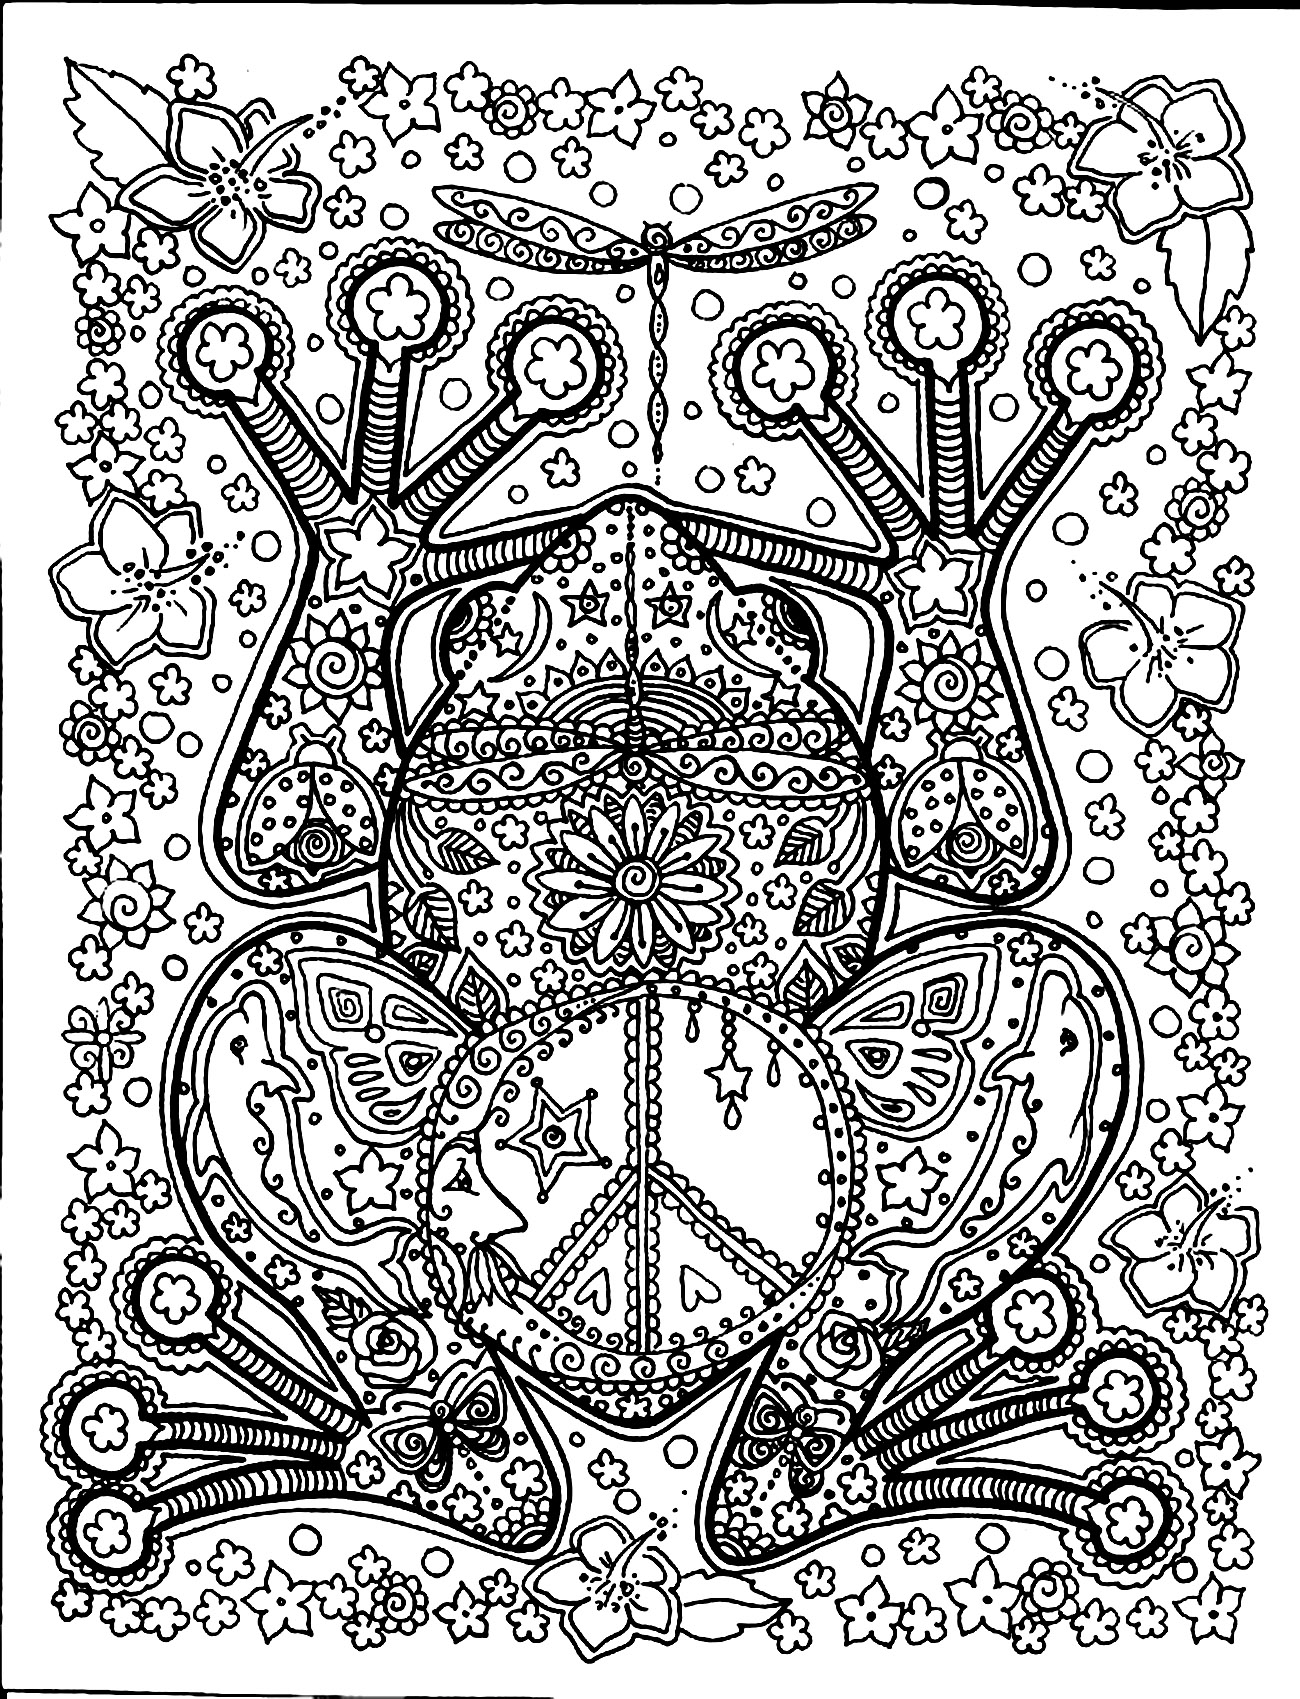 image=grenouilles coloriage adulte animaux grosse grenouille 1